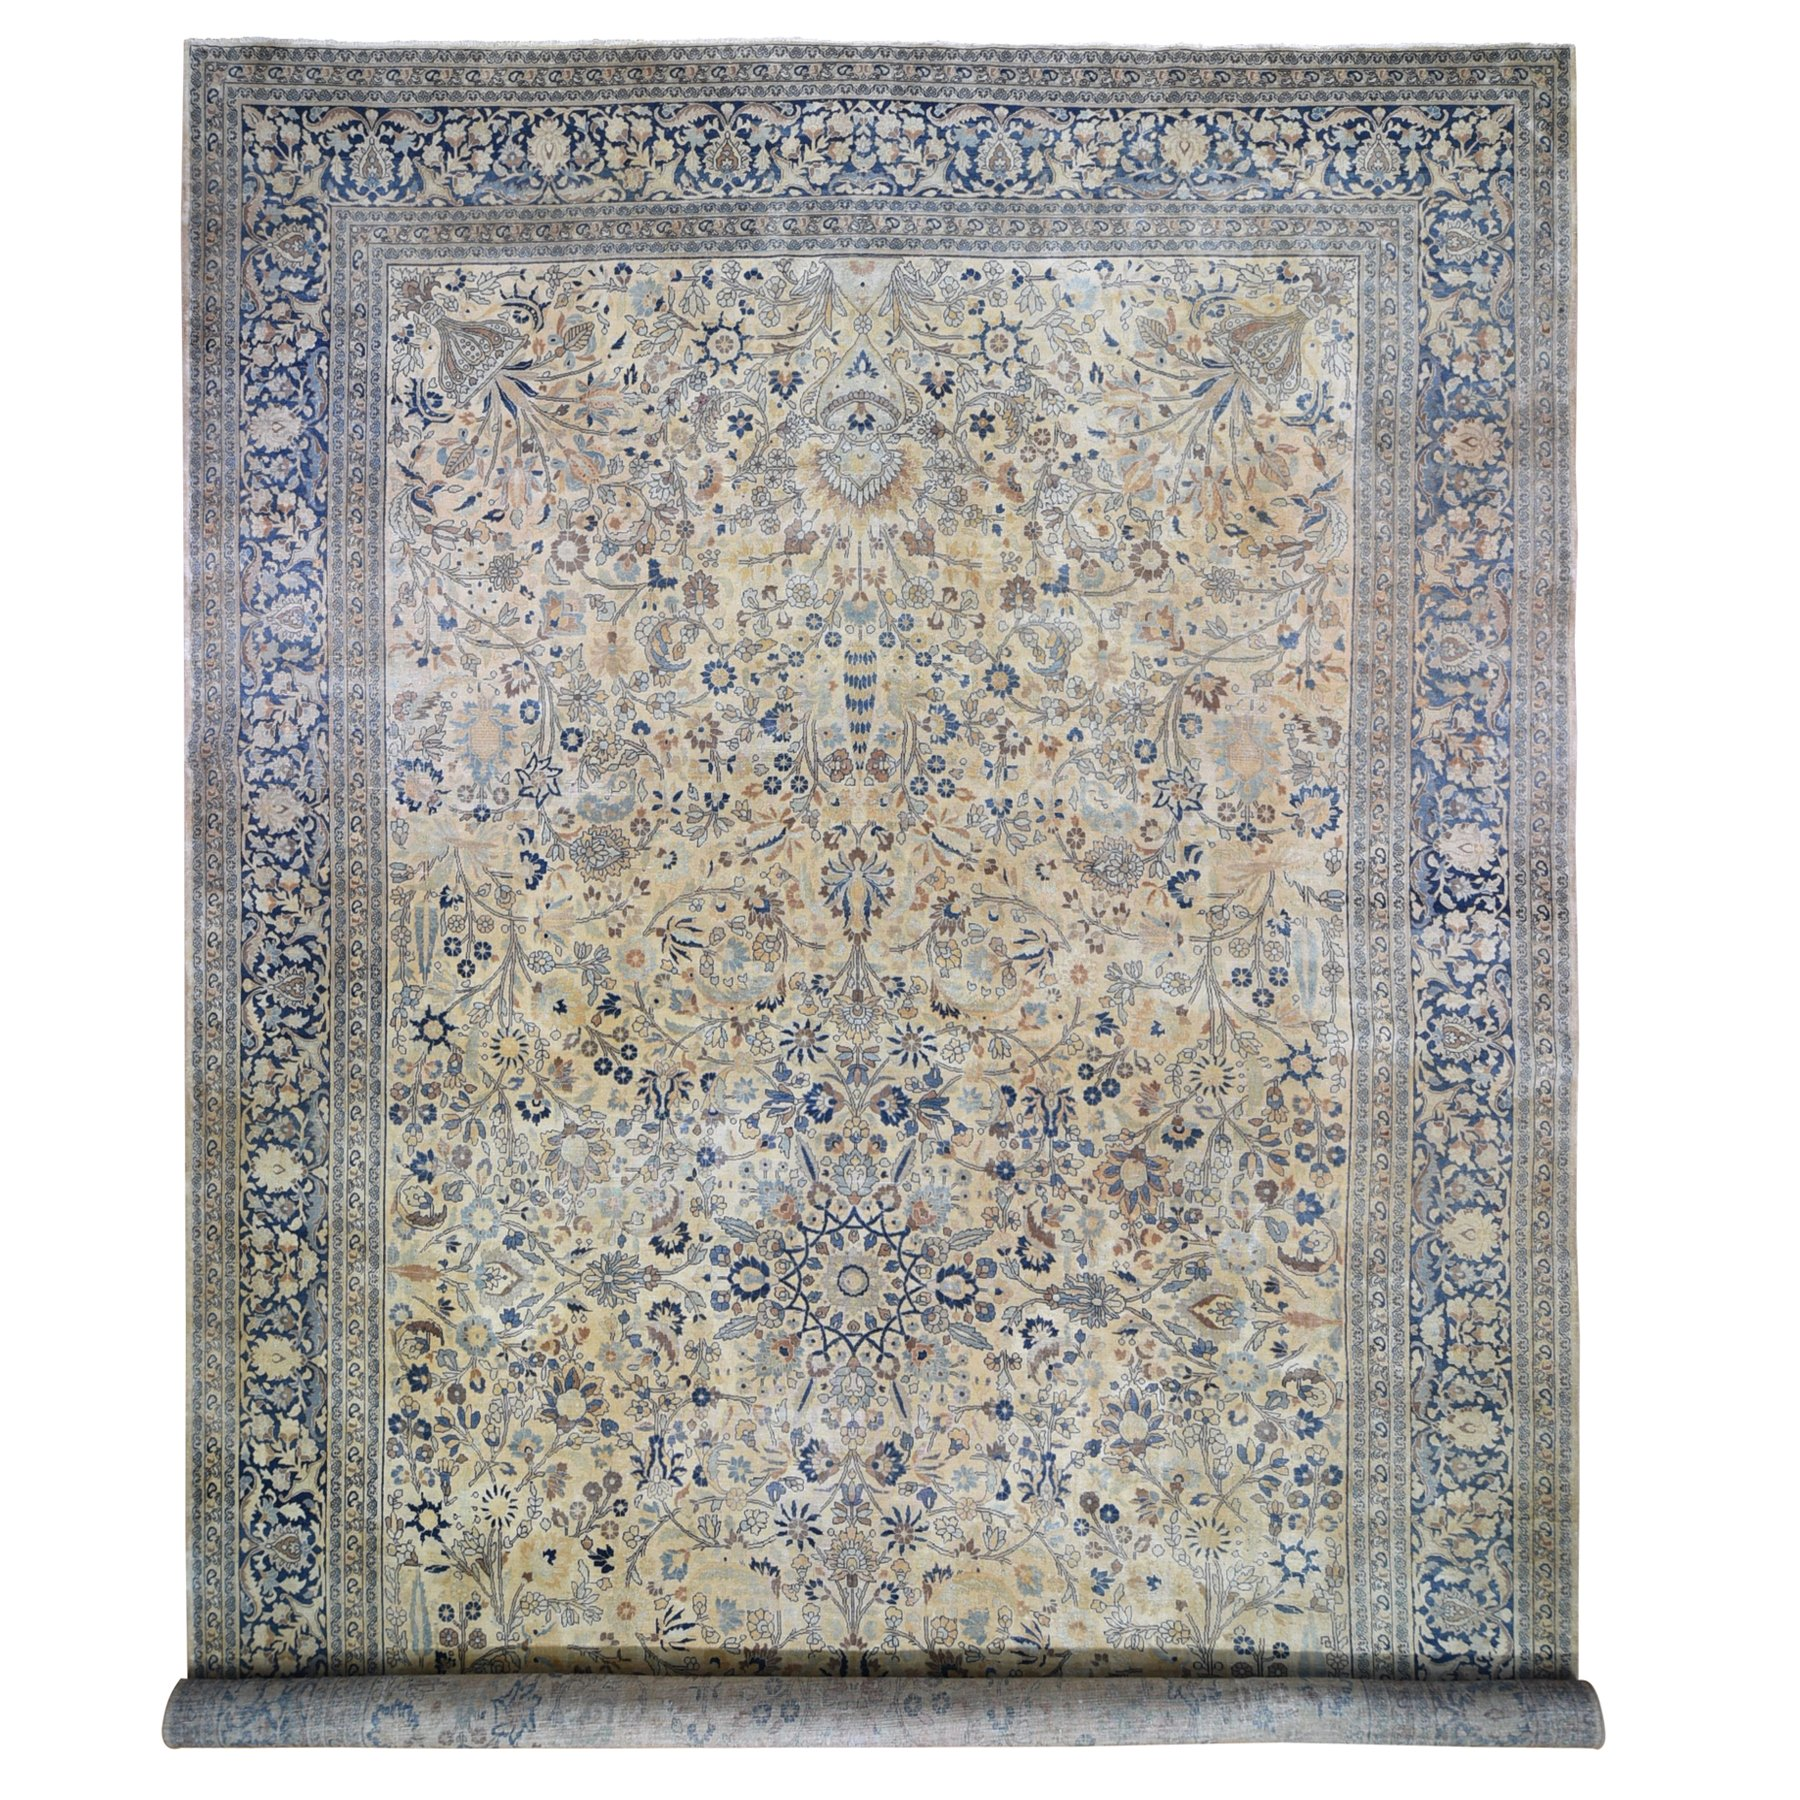 "13'7""x23' Oversize Antique Soft Colors Persian Khorasan Even Wear Hand Knotted Oriental Rug"